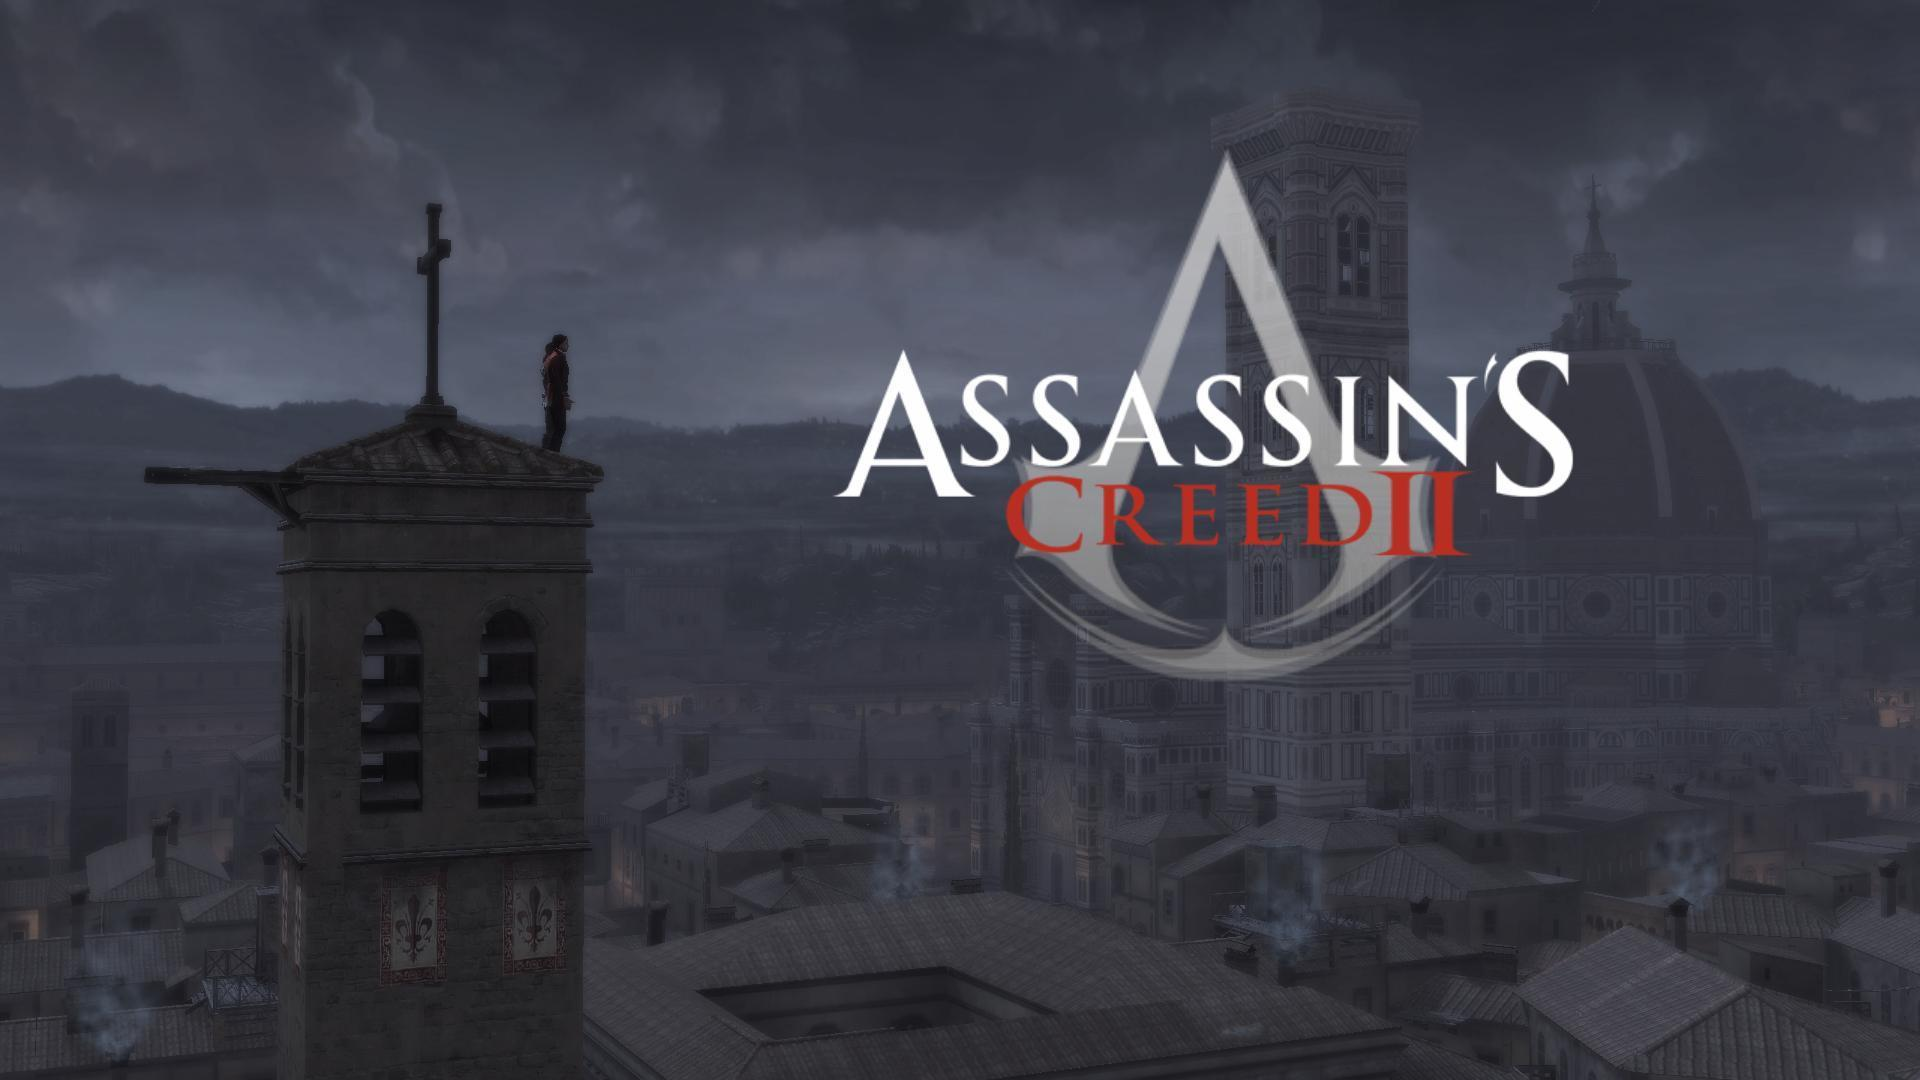 Italy Florence assassins creed HD Wallpaper